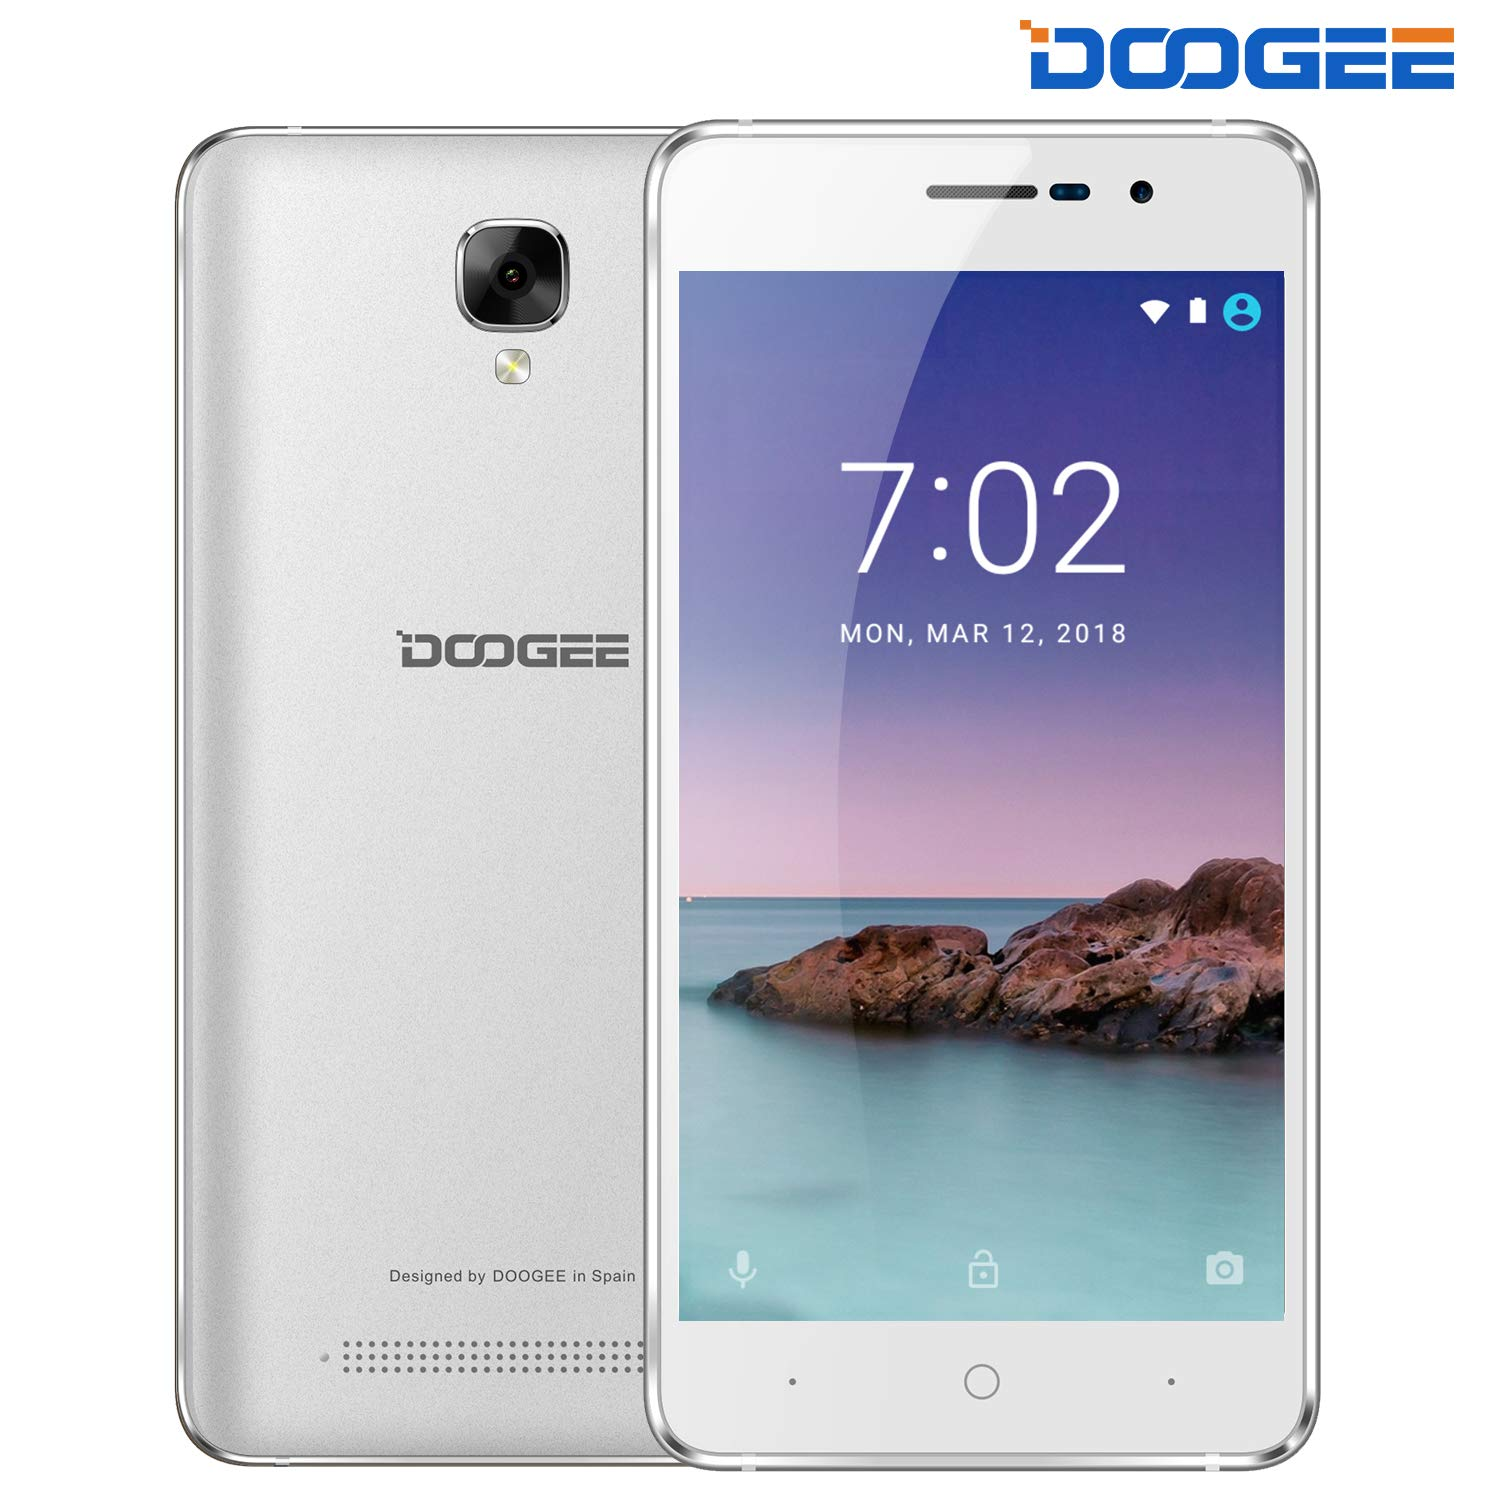 DOOGEE X10S, Unlocked Cell Phones - Dual Sim Smartphone with 5.0'' IPS Display - Android 8.1-1GB RAM - 8GB ROM - 2MP+5MP Dual Camera - 3360mAh Battery - 3G Unlocked Phones - Silver